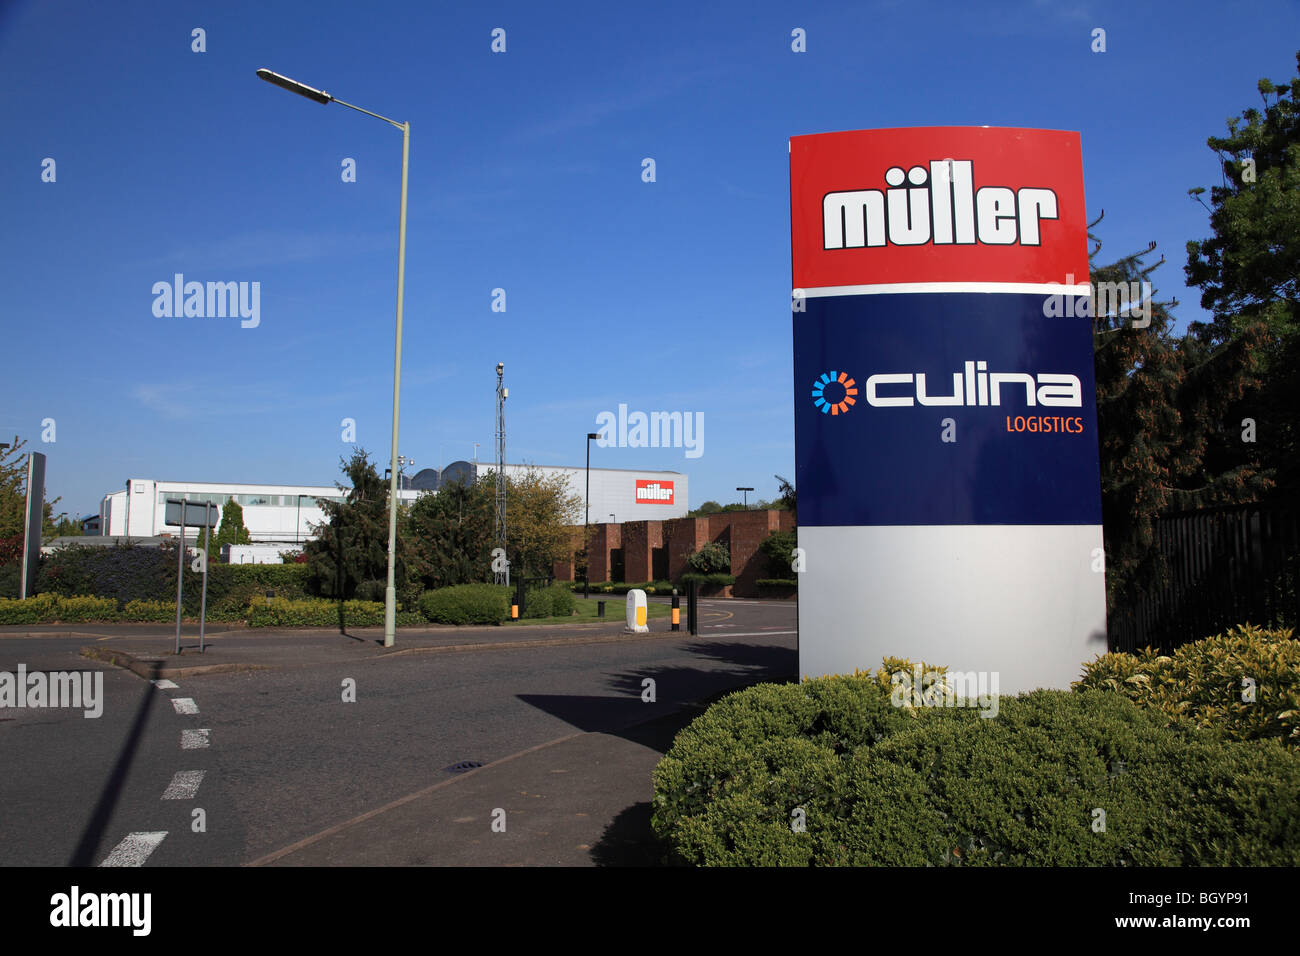 Entrance to the Culina logistics site next to Müller dairy, Market Drayton, Shropshire, England, UK - Stock Image